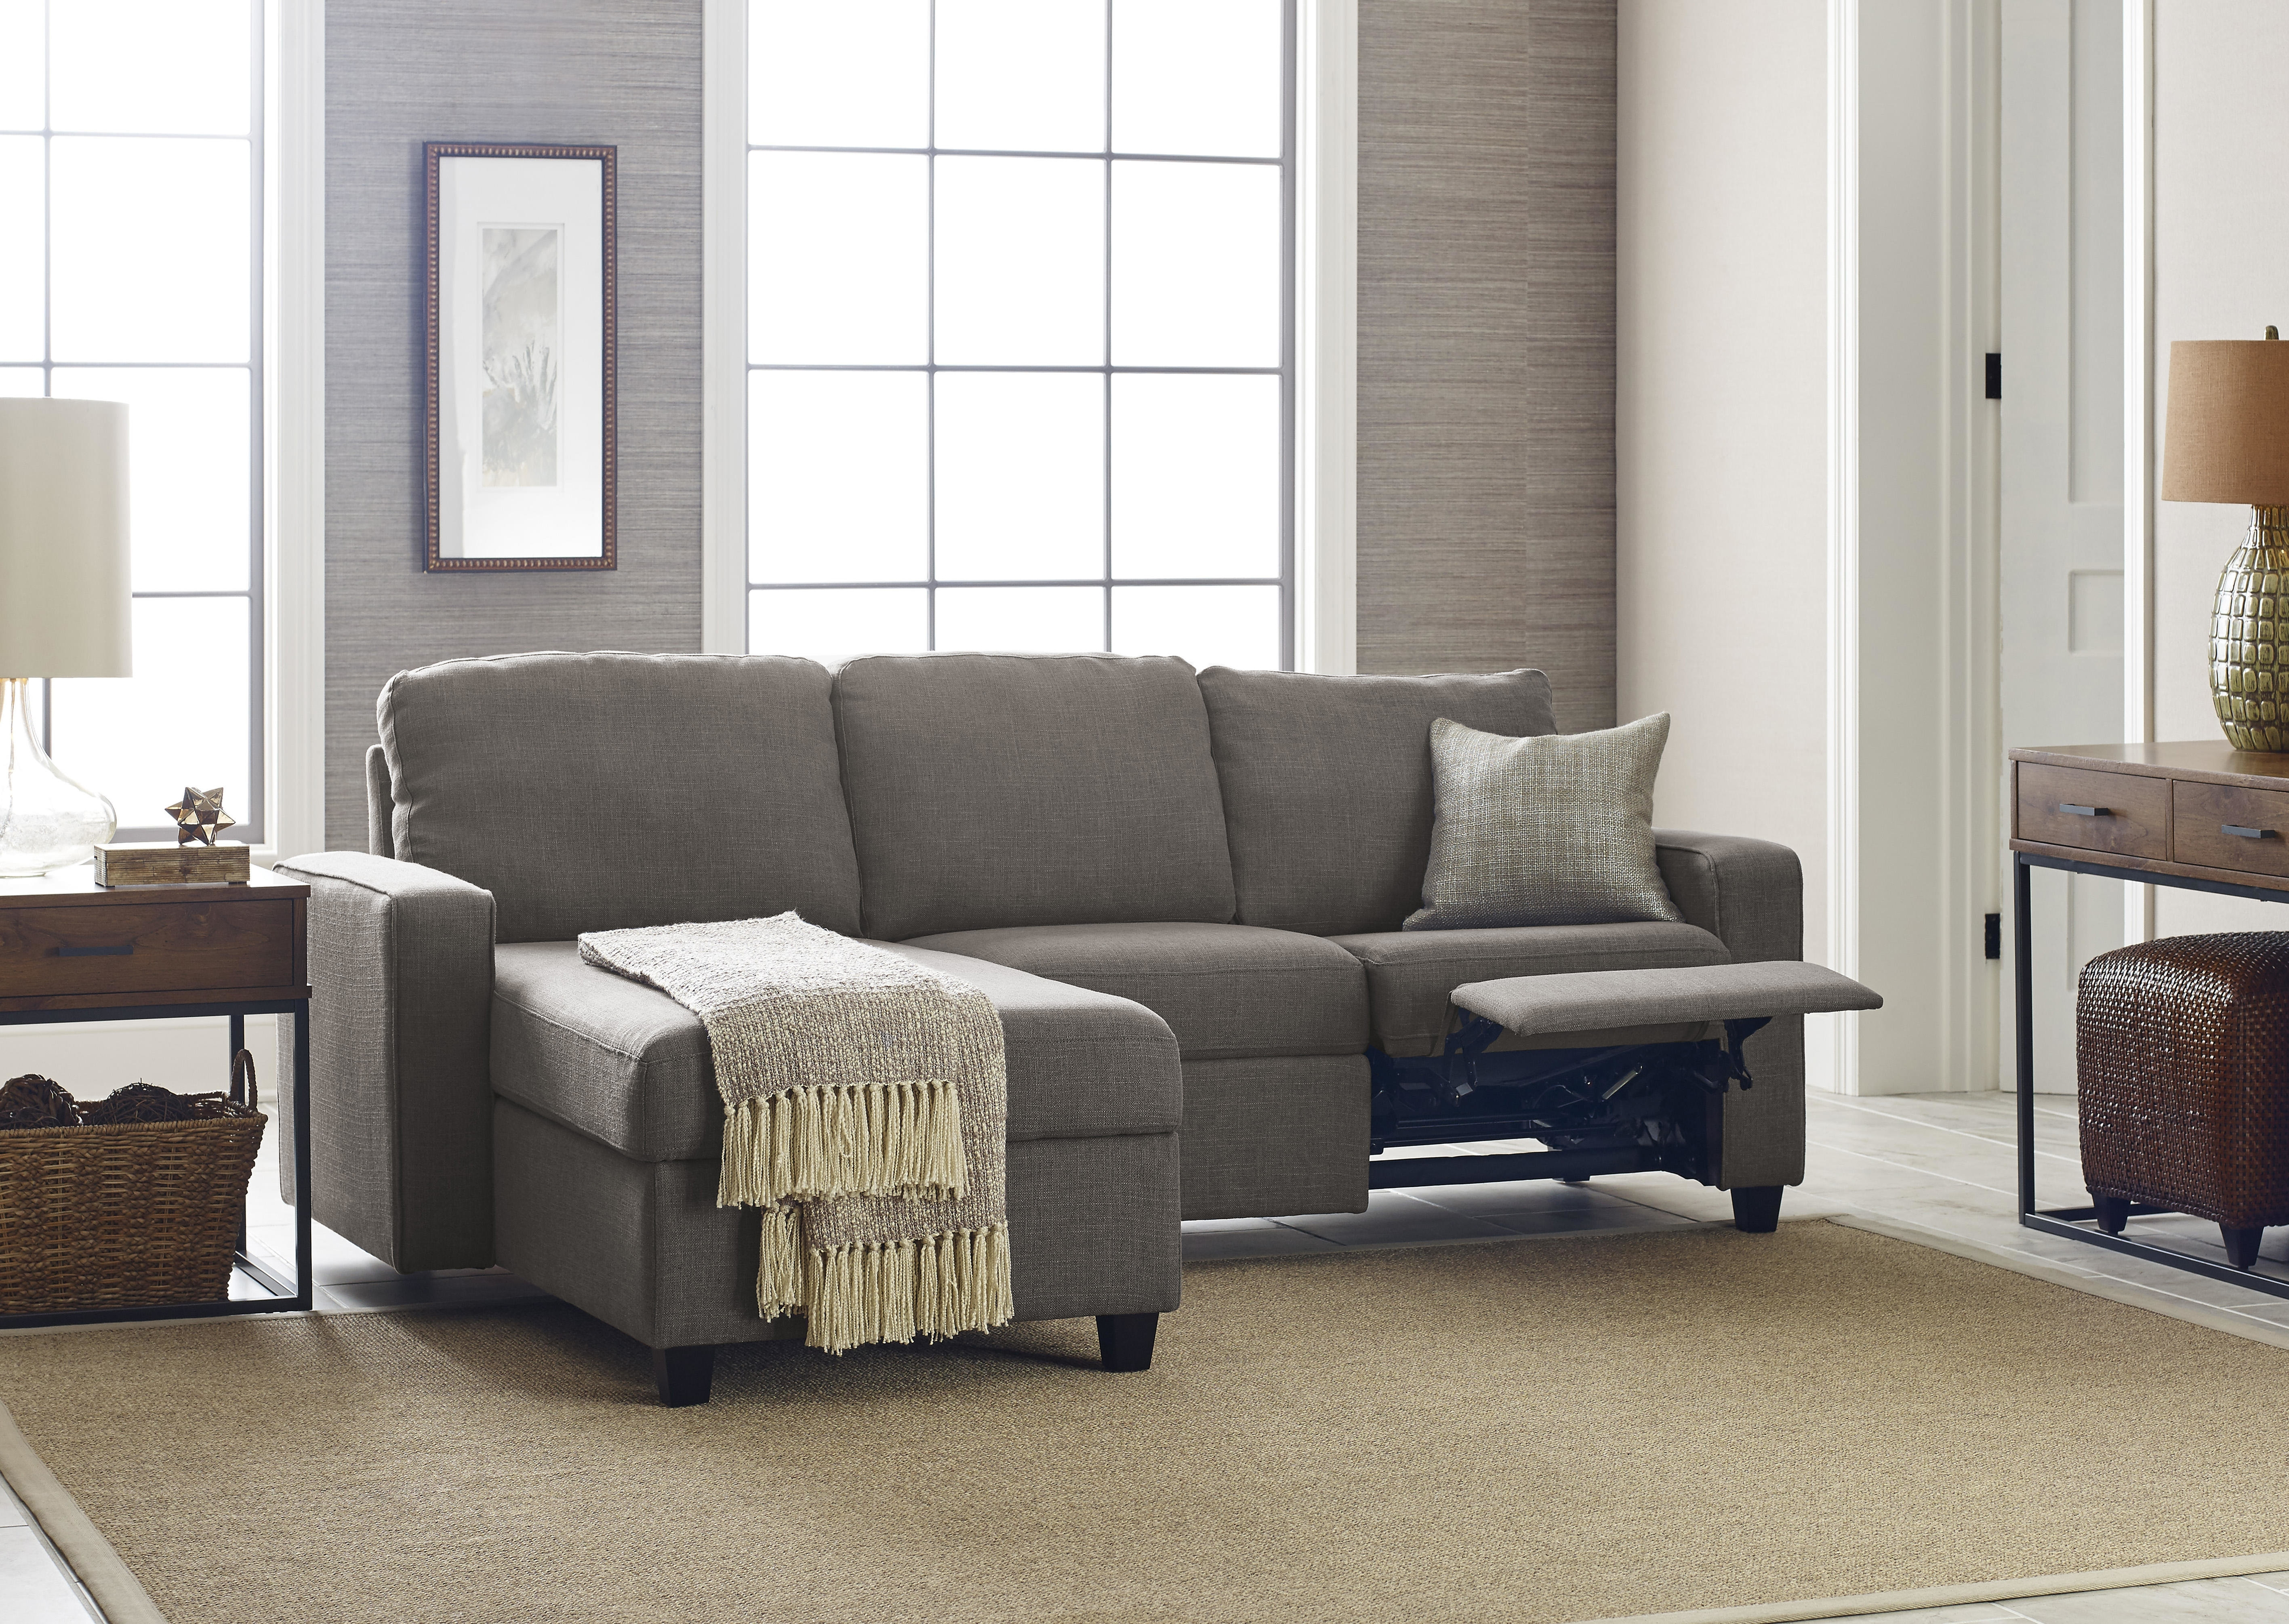 Serta At Home Palisades Reclining Sectional & Reviews | Wayfair inside Josephine 2 Piece Sectionals With Laf Sofa (Image 26 of 30)